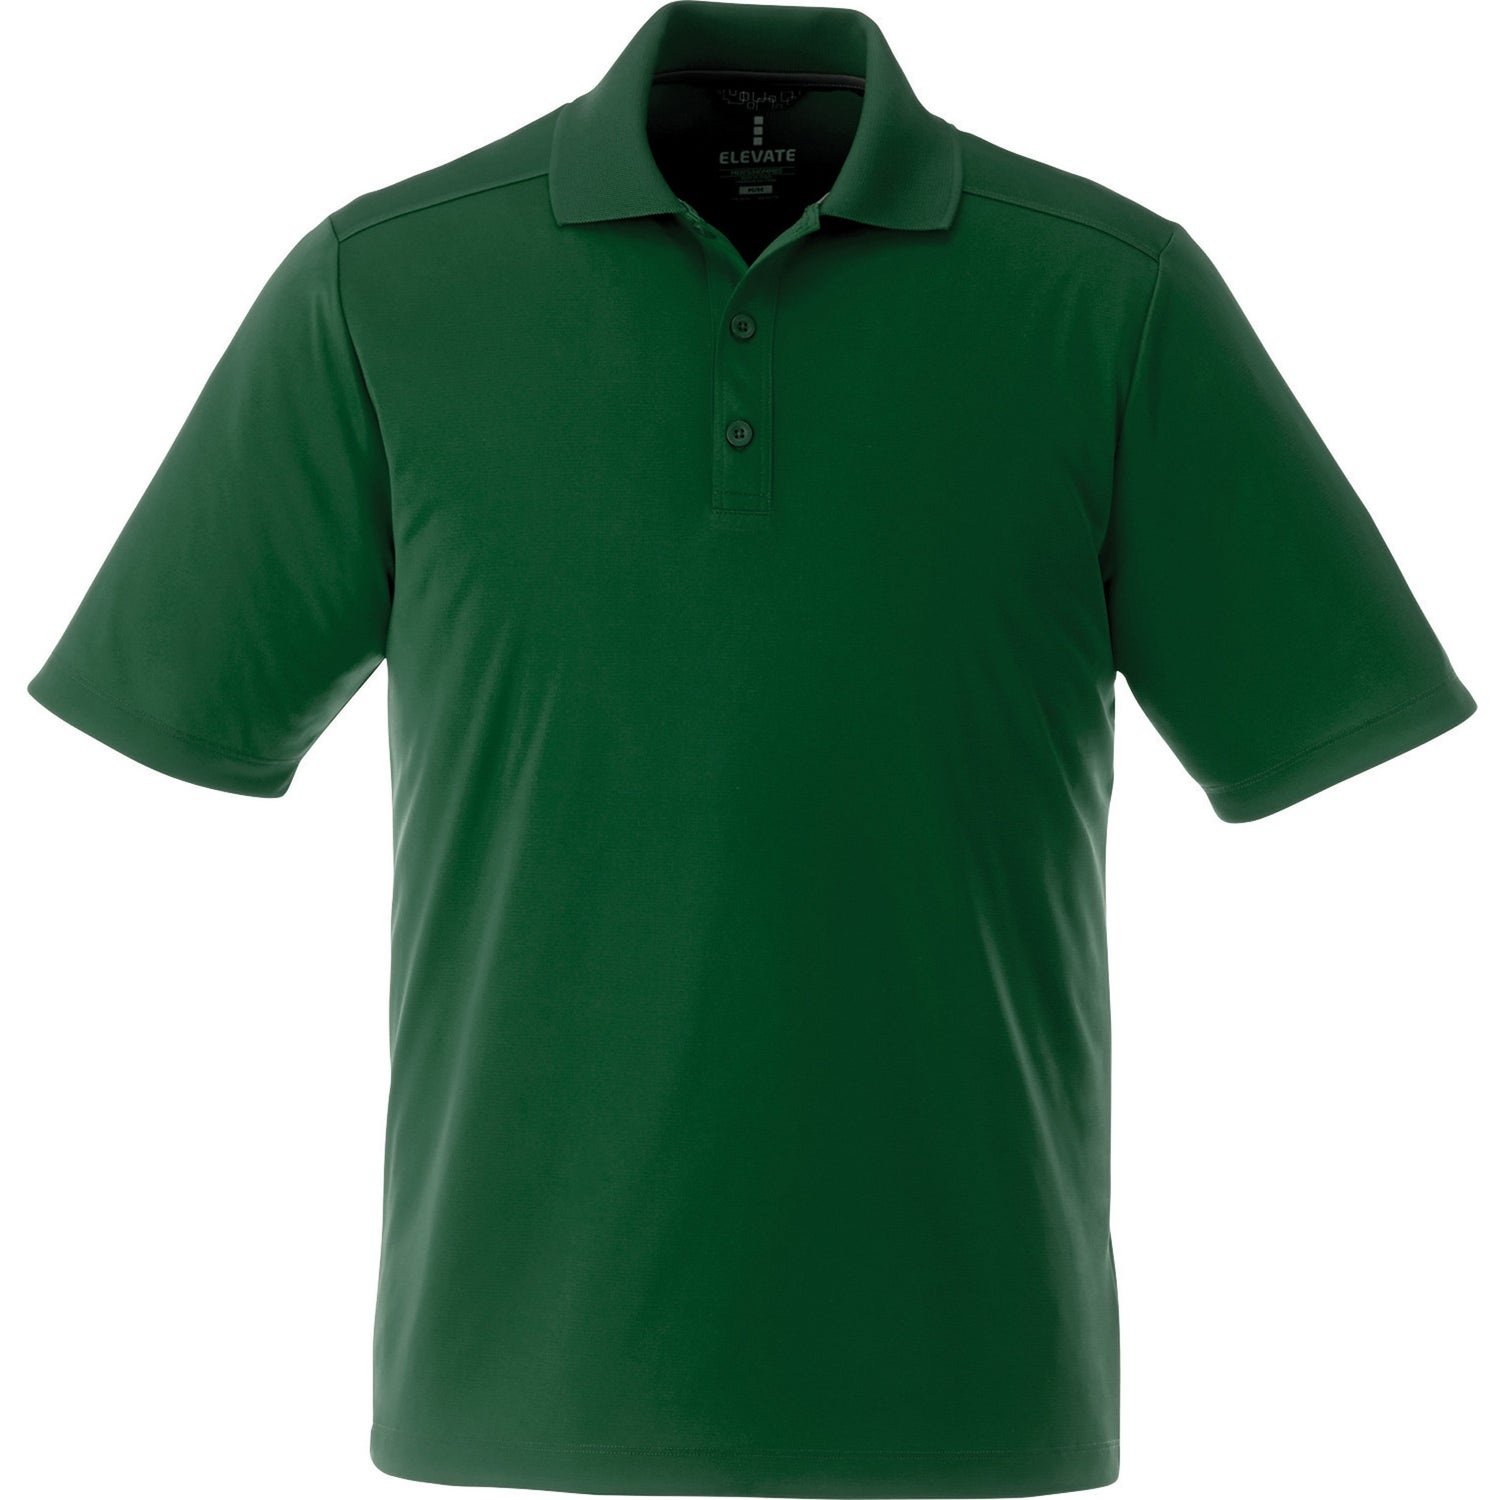 Promotional Men's Dade Short Sleeve Polo Shirt by TRIMARKs with Custom Logo  for $9.91 Ea.